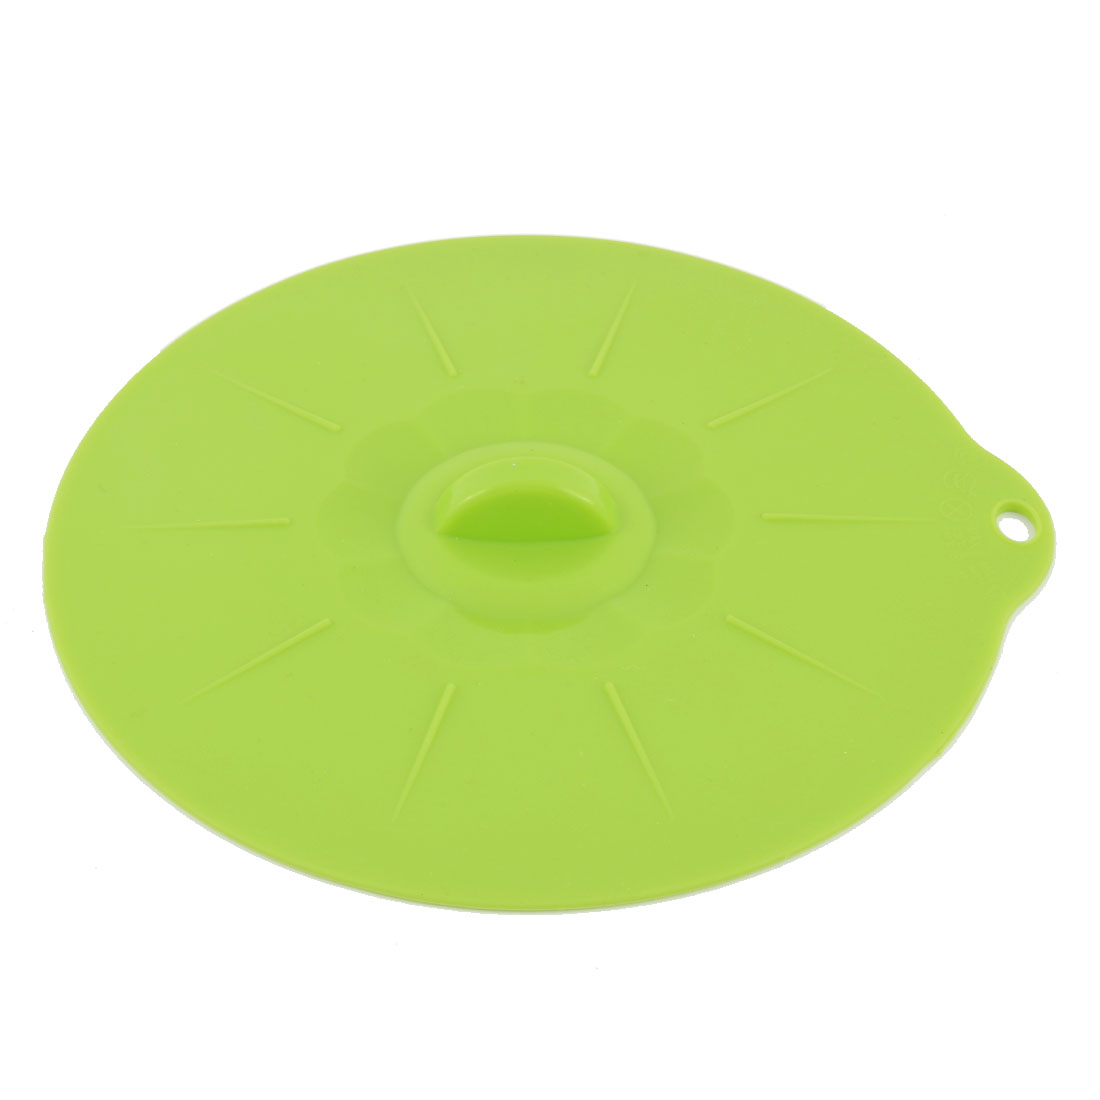 Home Kitchen Silicone Food Refrigeration Microwave Heating Storage Bowl Pan Container Lid Cap Cover Green